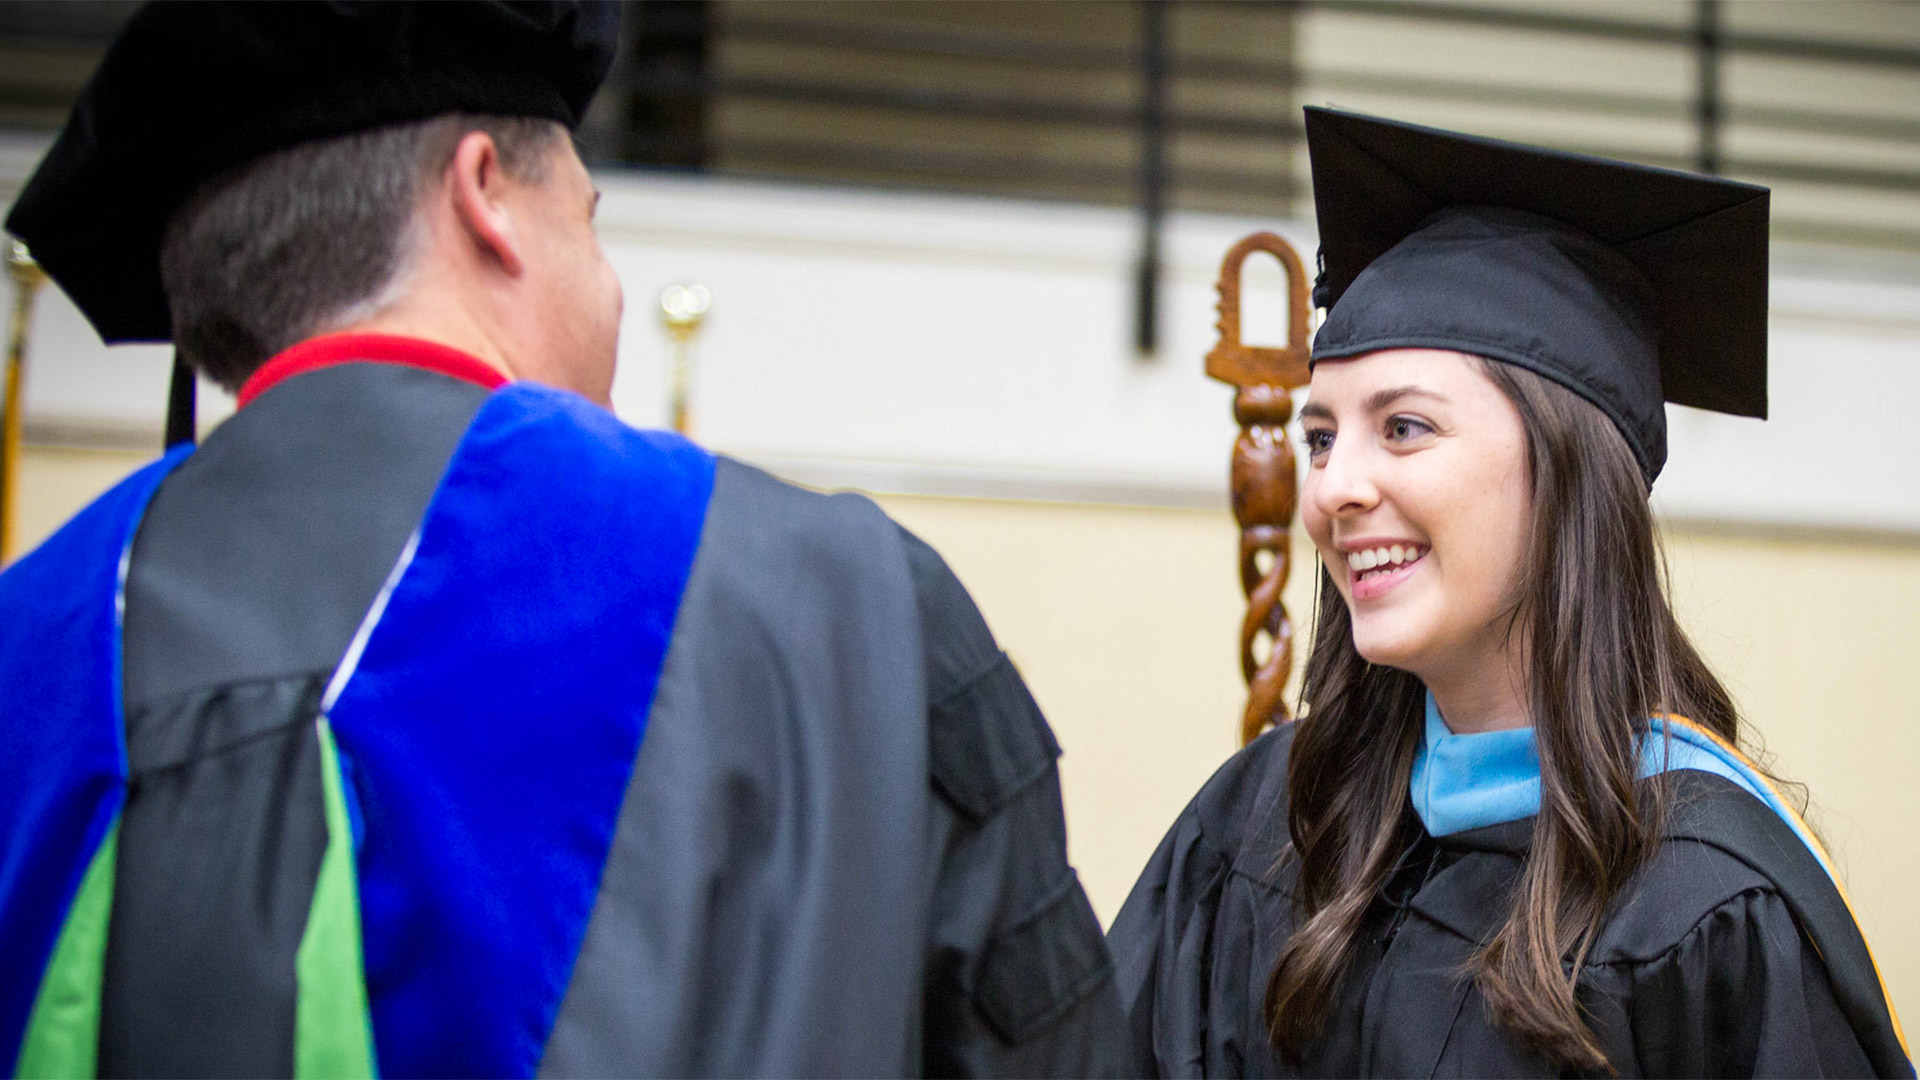 A student receives her master's degree during commencement